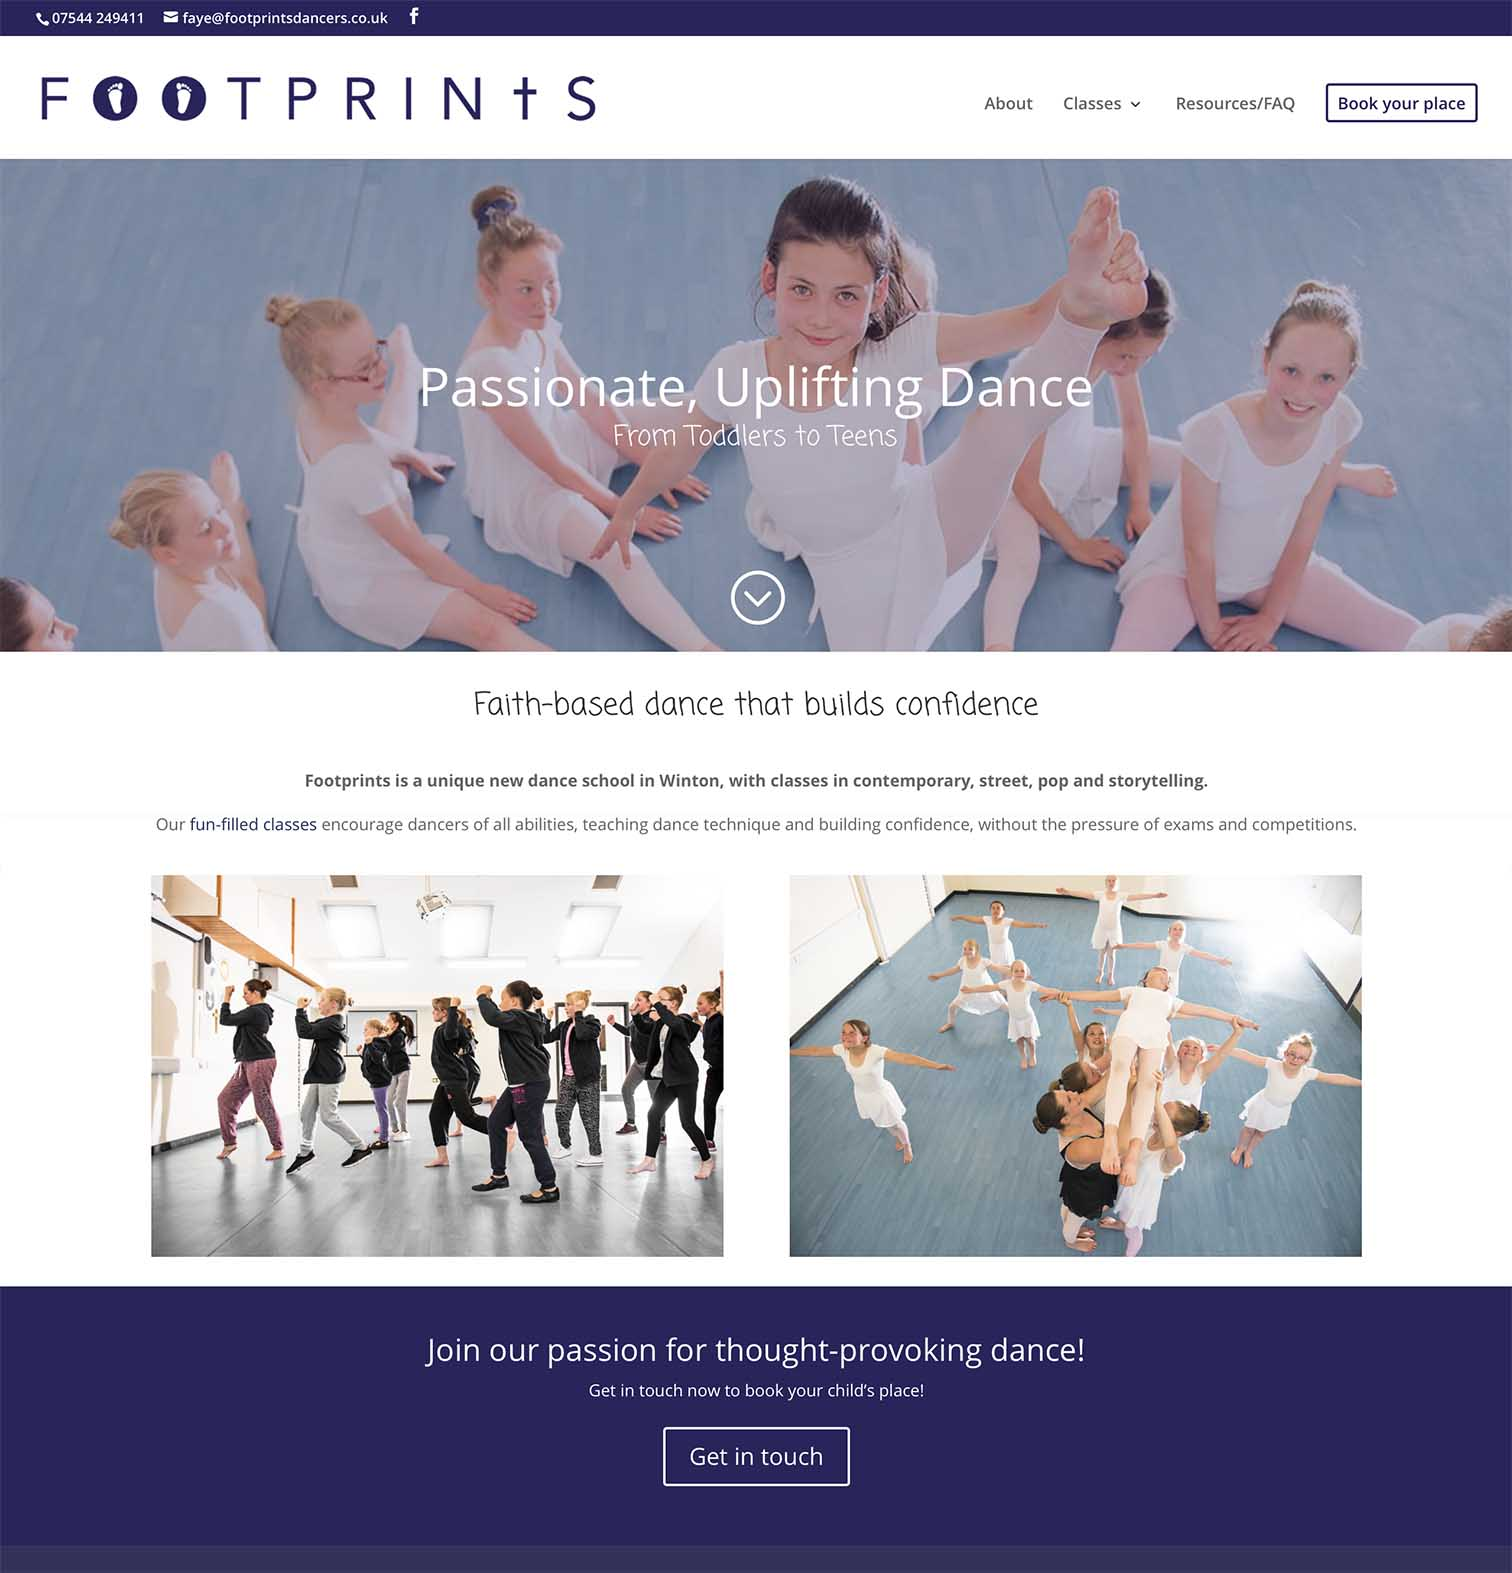 Footprints Dance School Website Creation and Design - Be Gallant